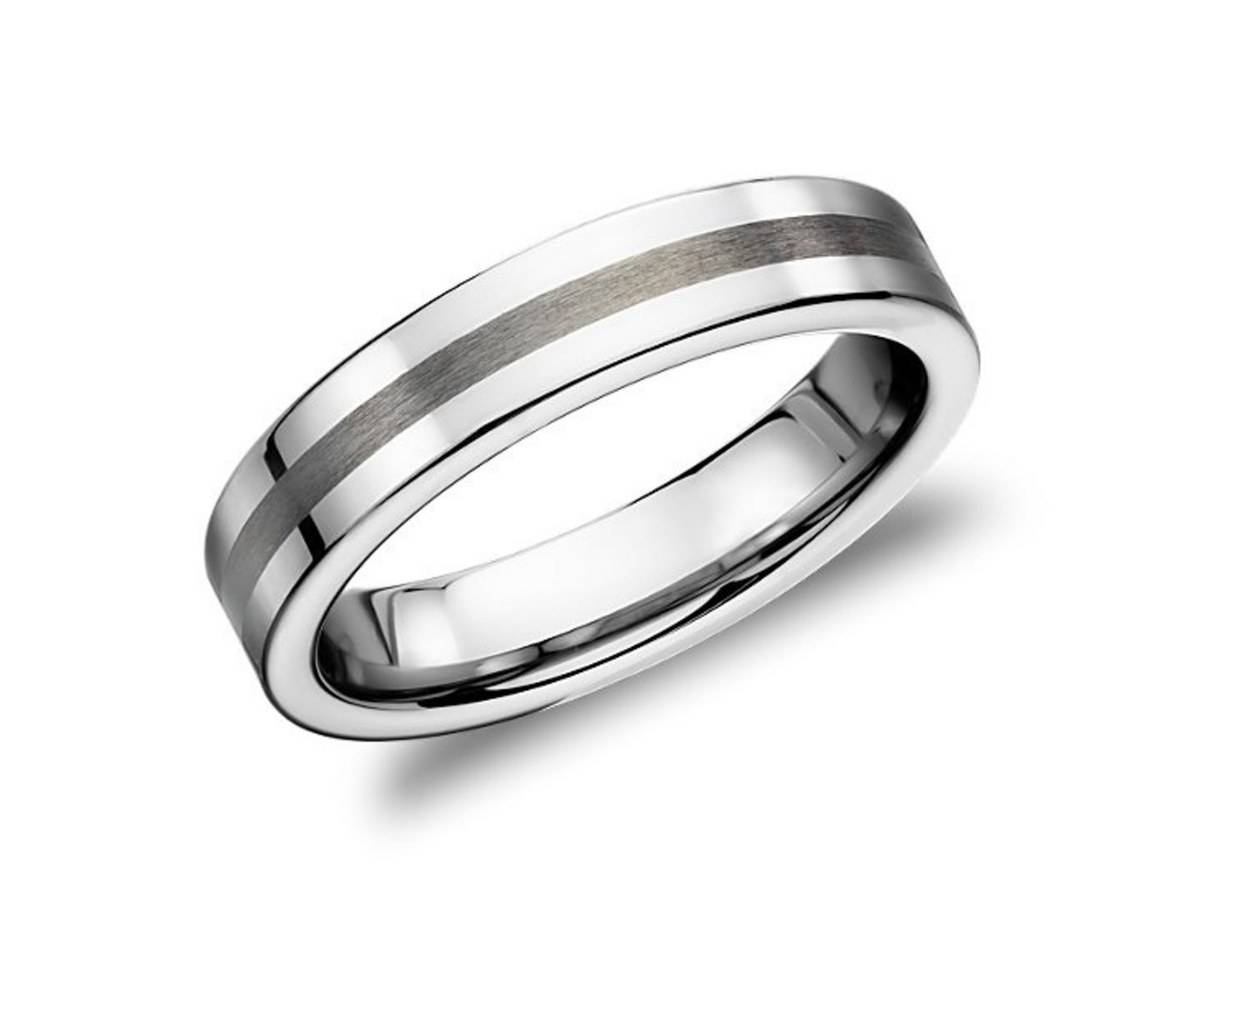 15 Men's Wedding Bands Your Groom Won't Want To Take Off | Glamour Inside Tiffany Wedding Bands For Men (View 13 of 15)